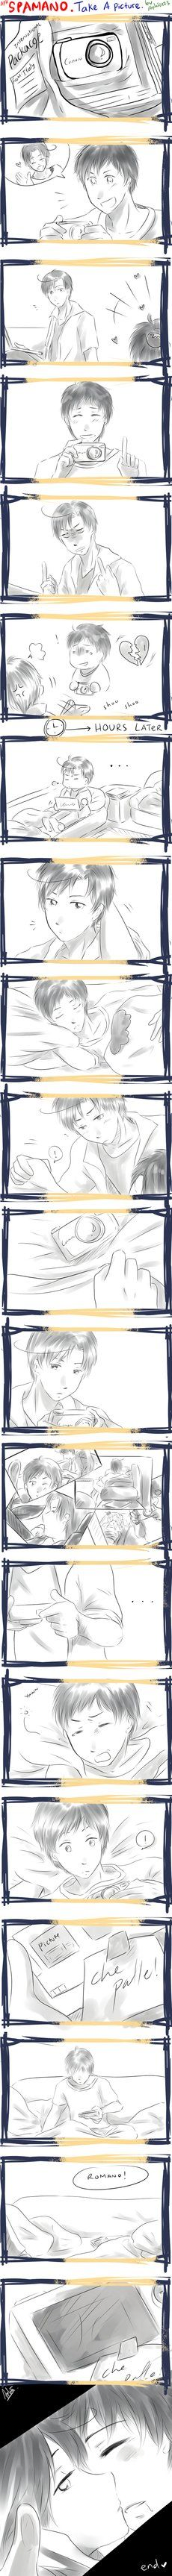 APH -- Spamano -- Lets Take A Picture !! by ~aphin123 on deviantART